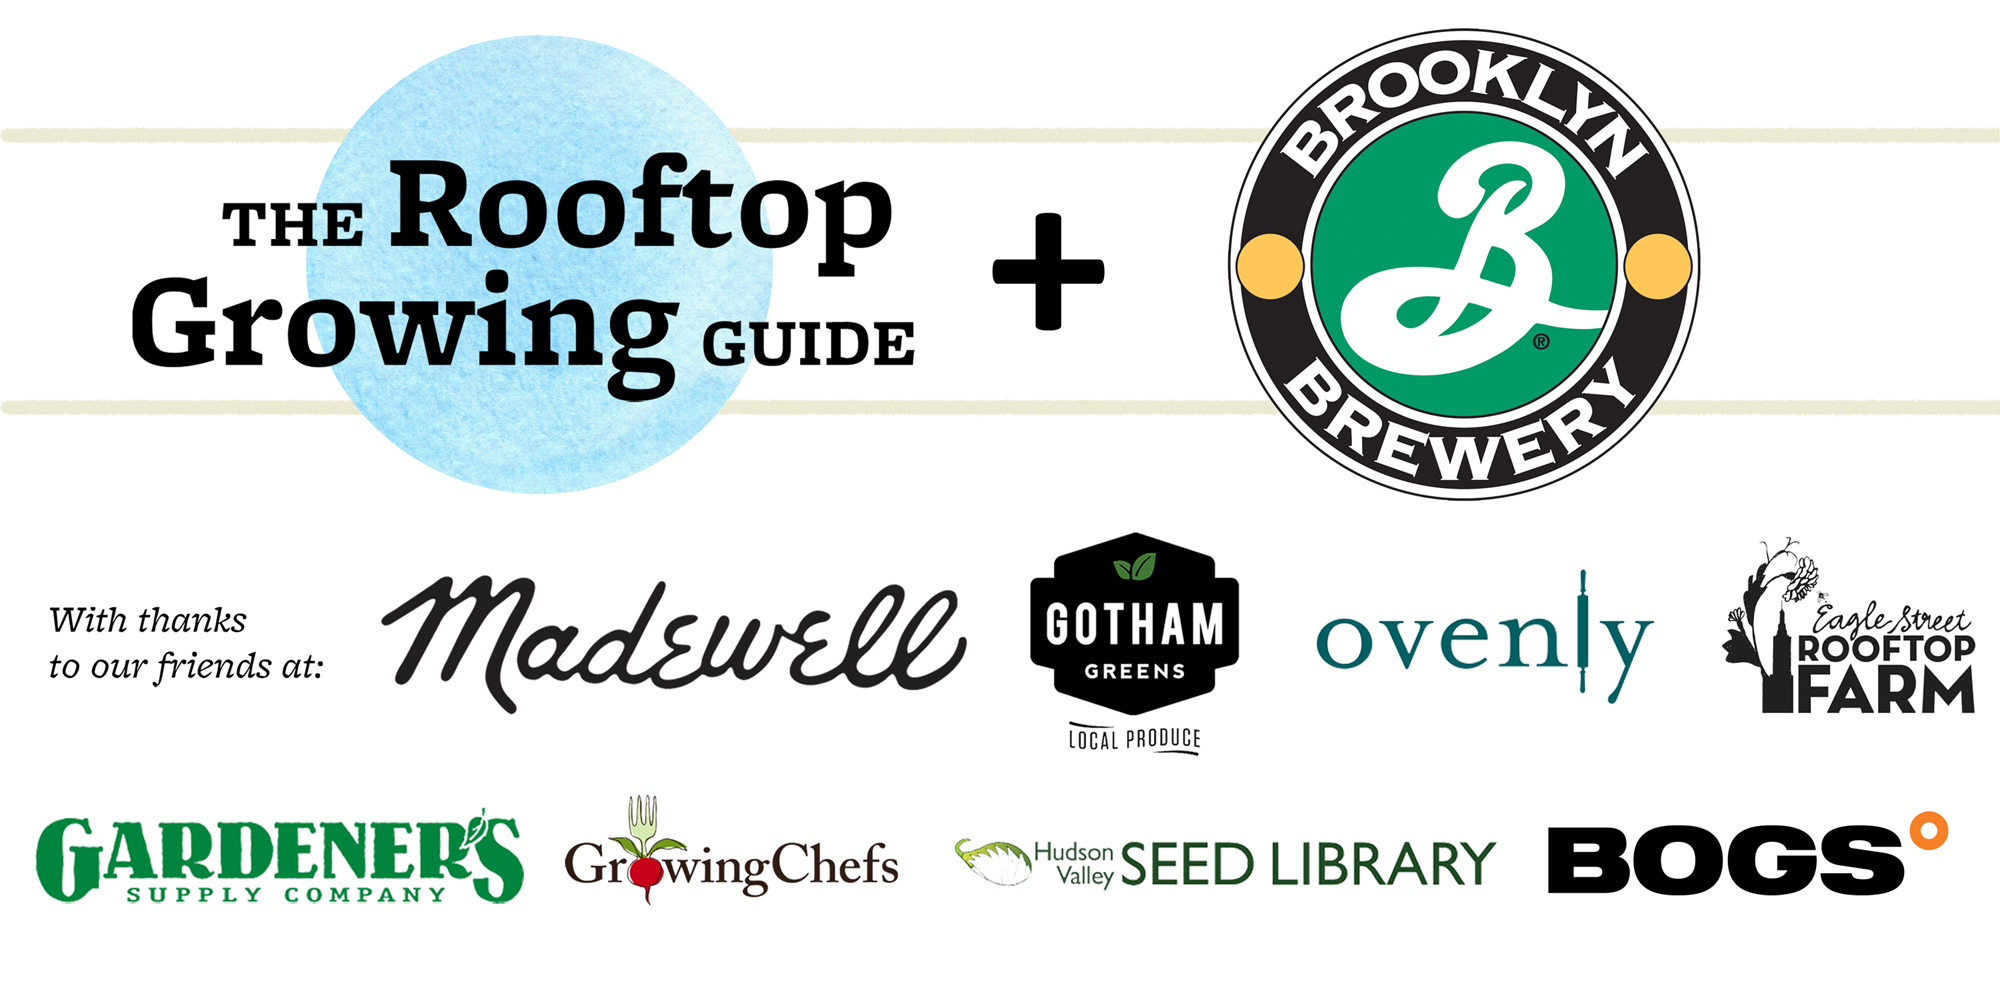 Rooftop Growing Guide Launch Party for Urban Farmers at Brooklyn Brewery New York City